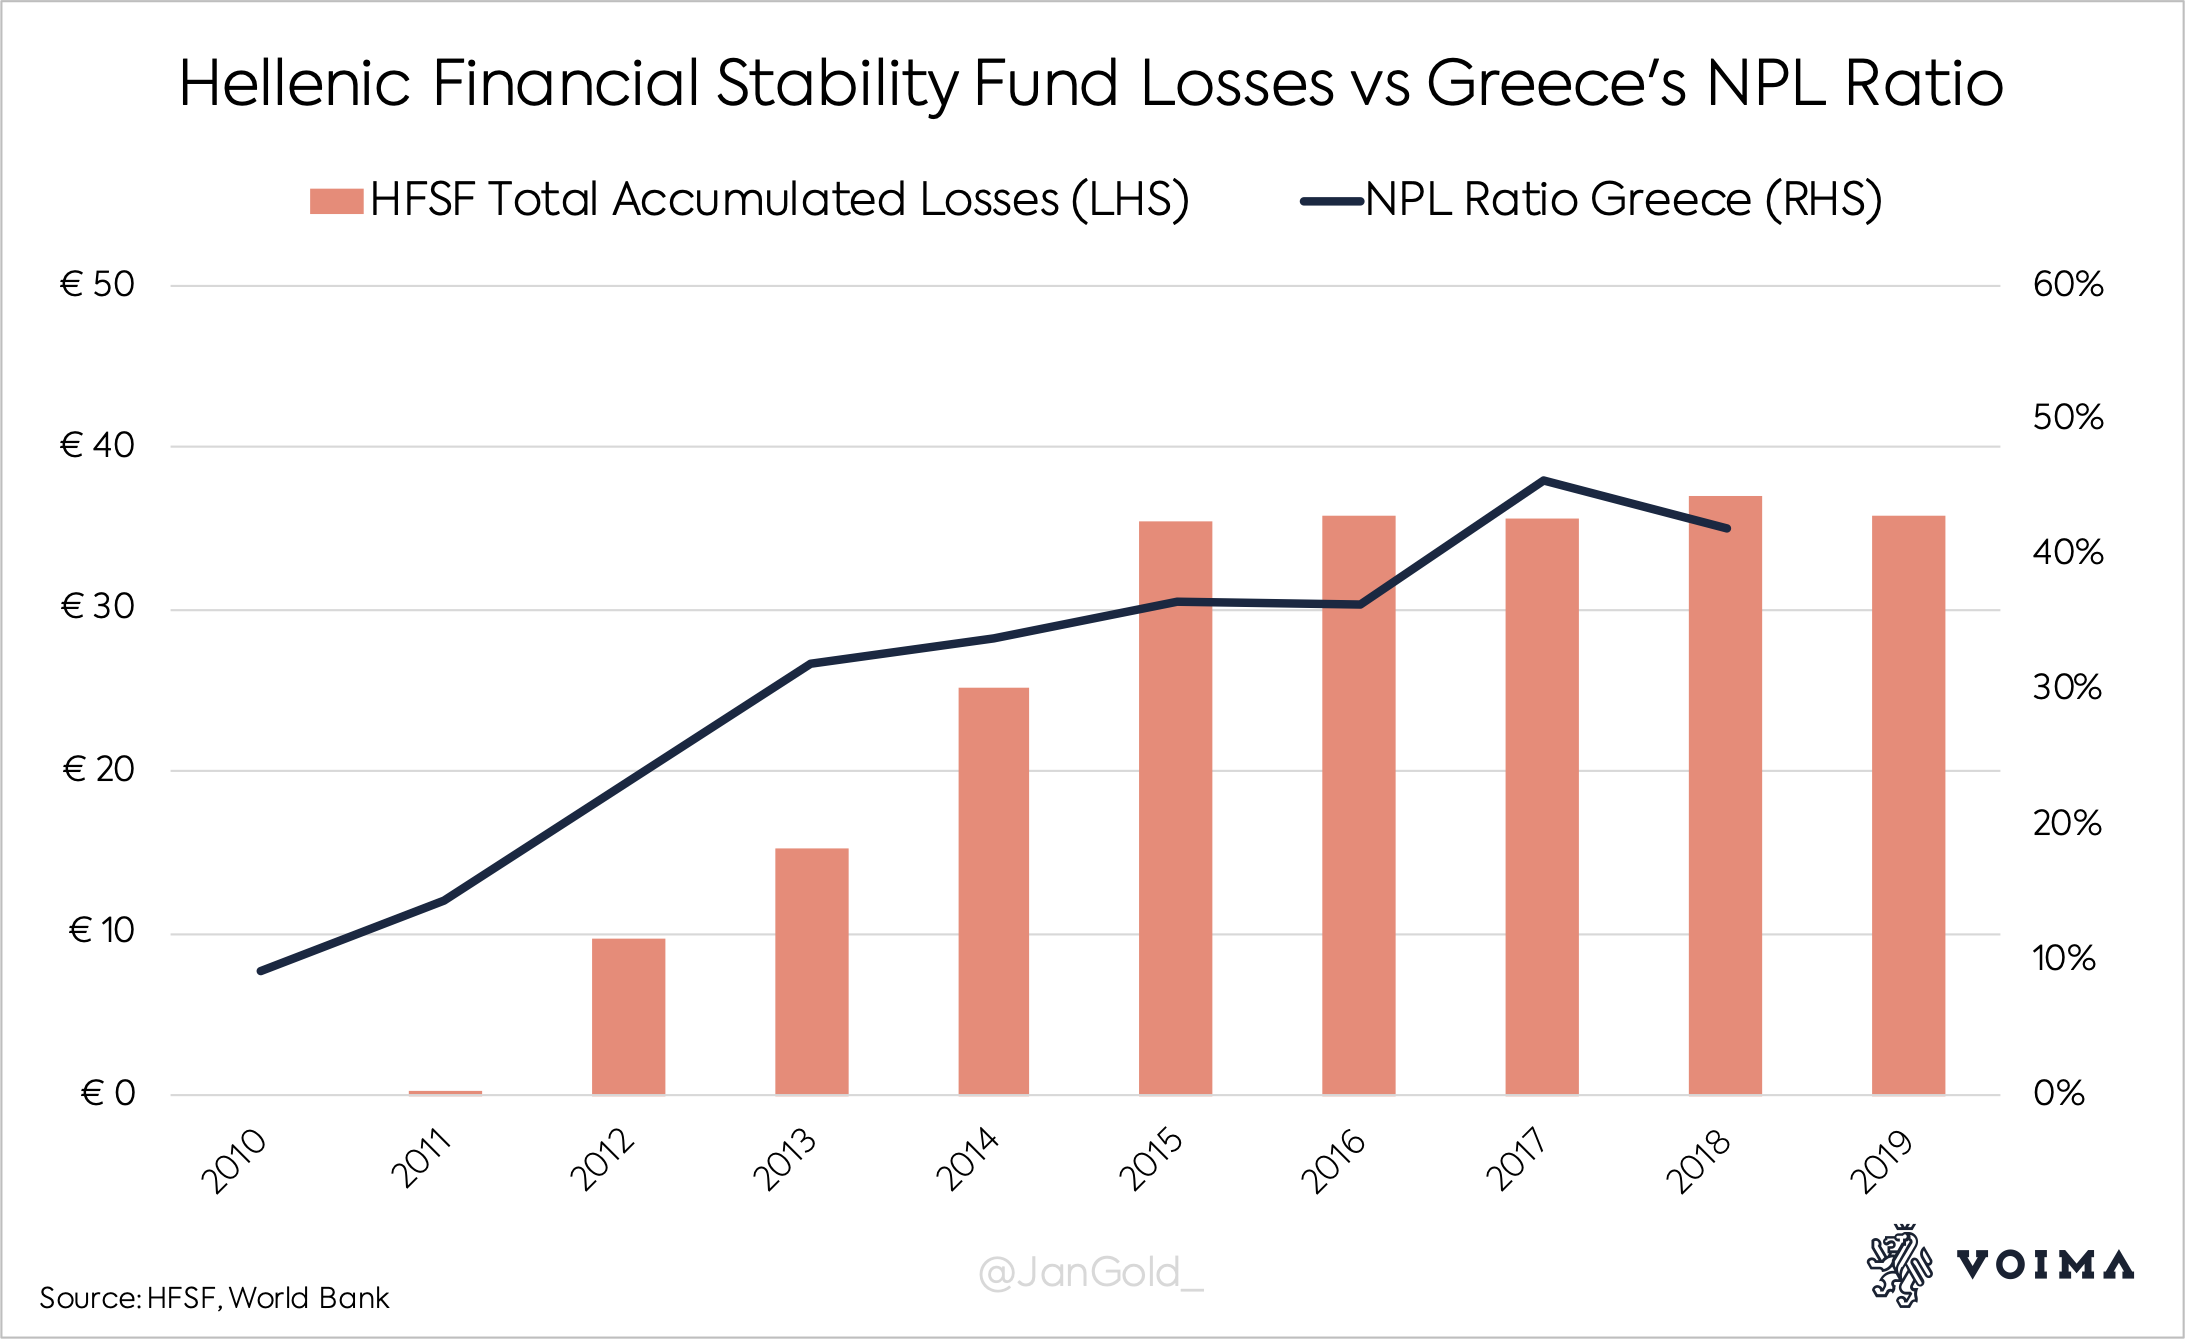 Hellenic Financial Stability Fund Losses vs Greeces NPL Ratio